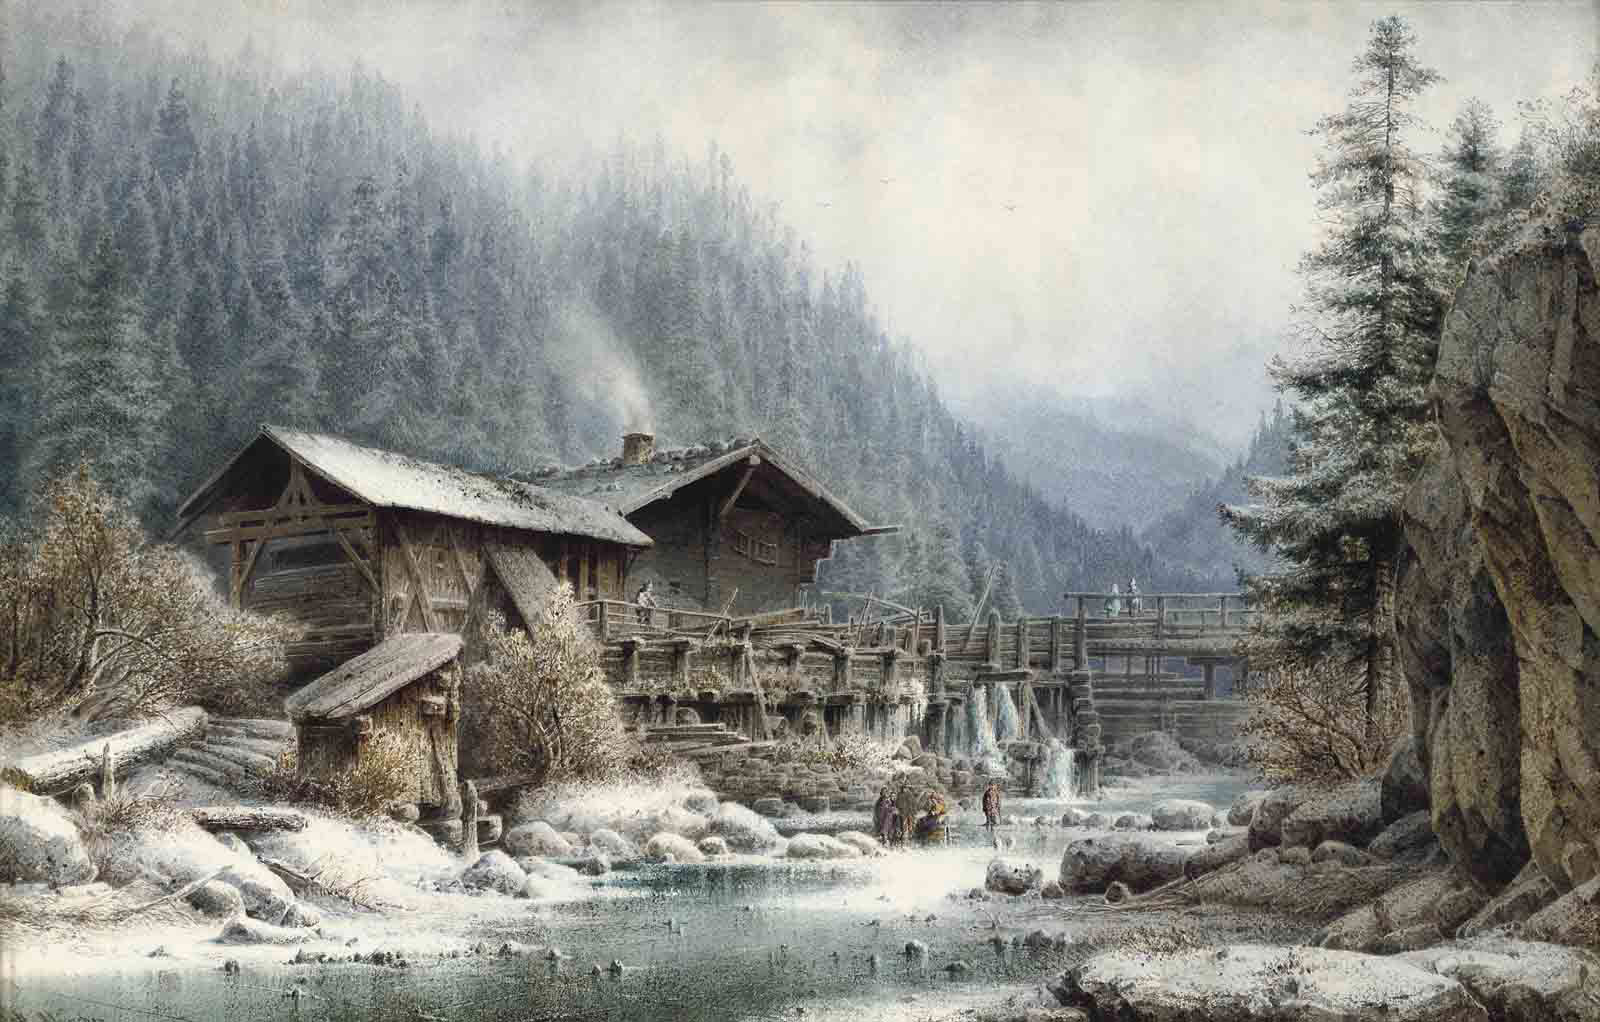 Figures on a frozen river before a Bavarian chalet